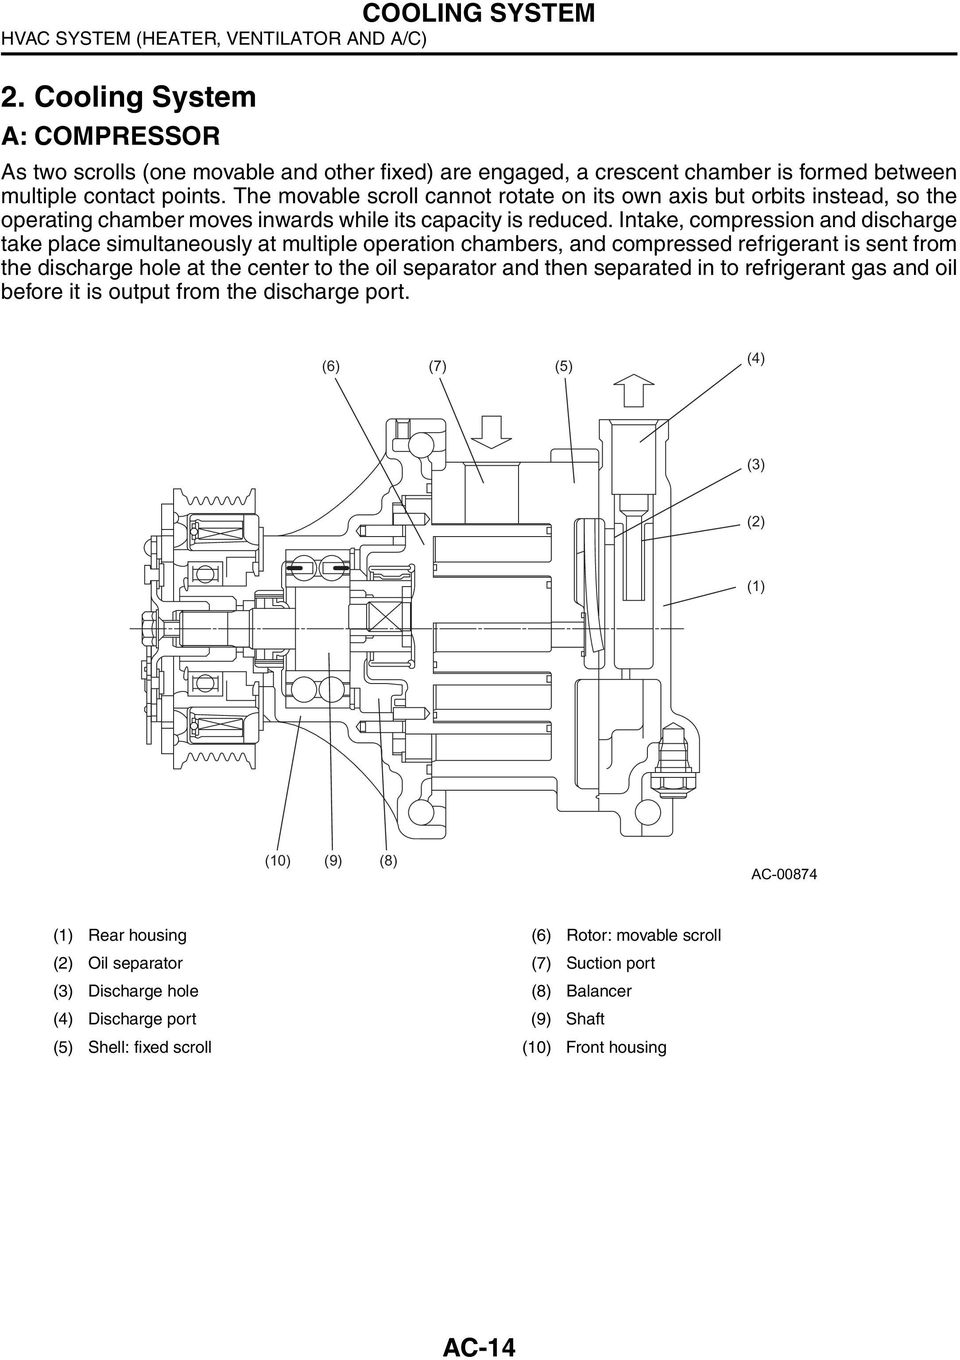 Mazda 3 Service Manual: Airflow Mode Actuator RemovalInstallation Full Auto Air Conditioner